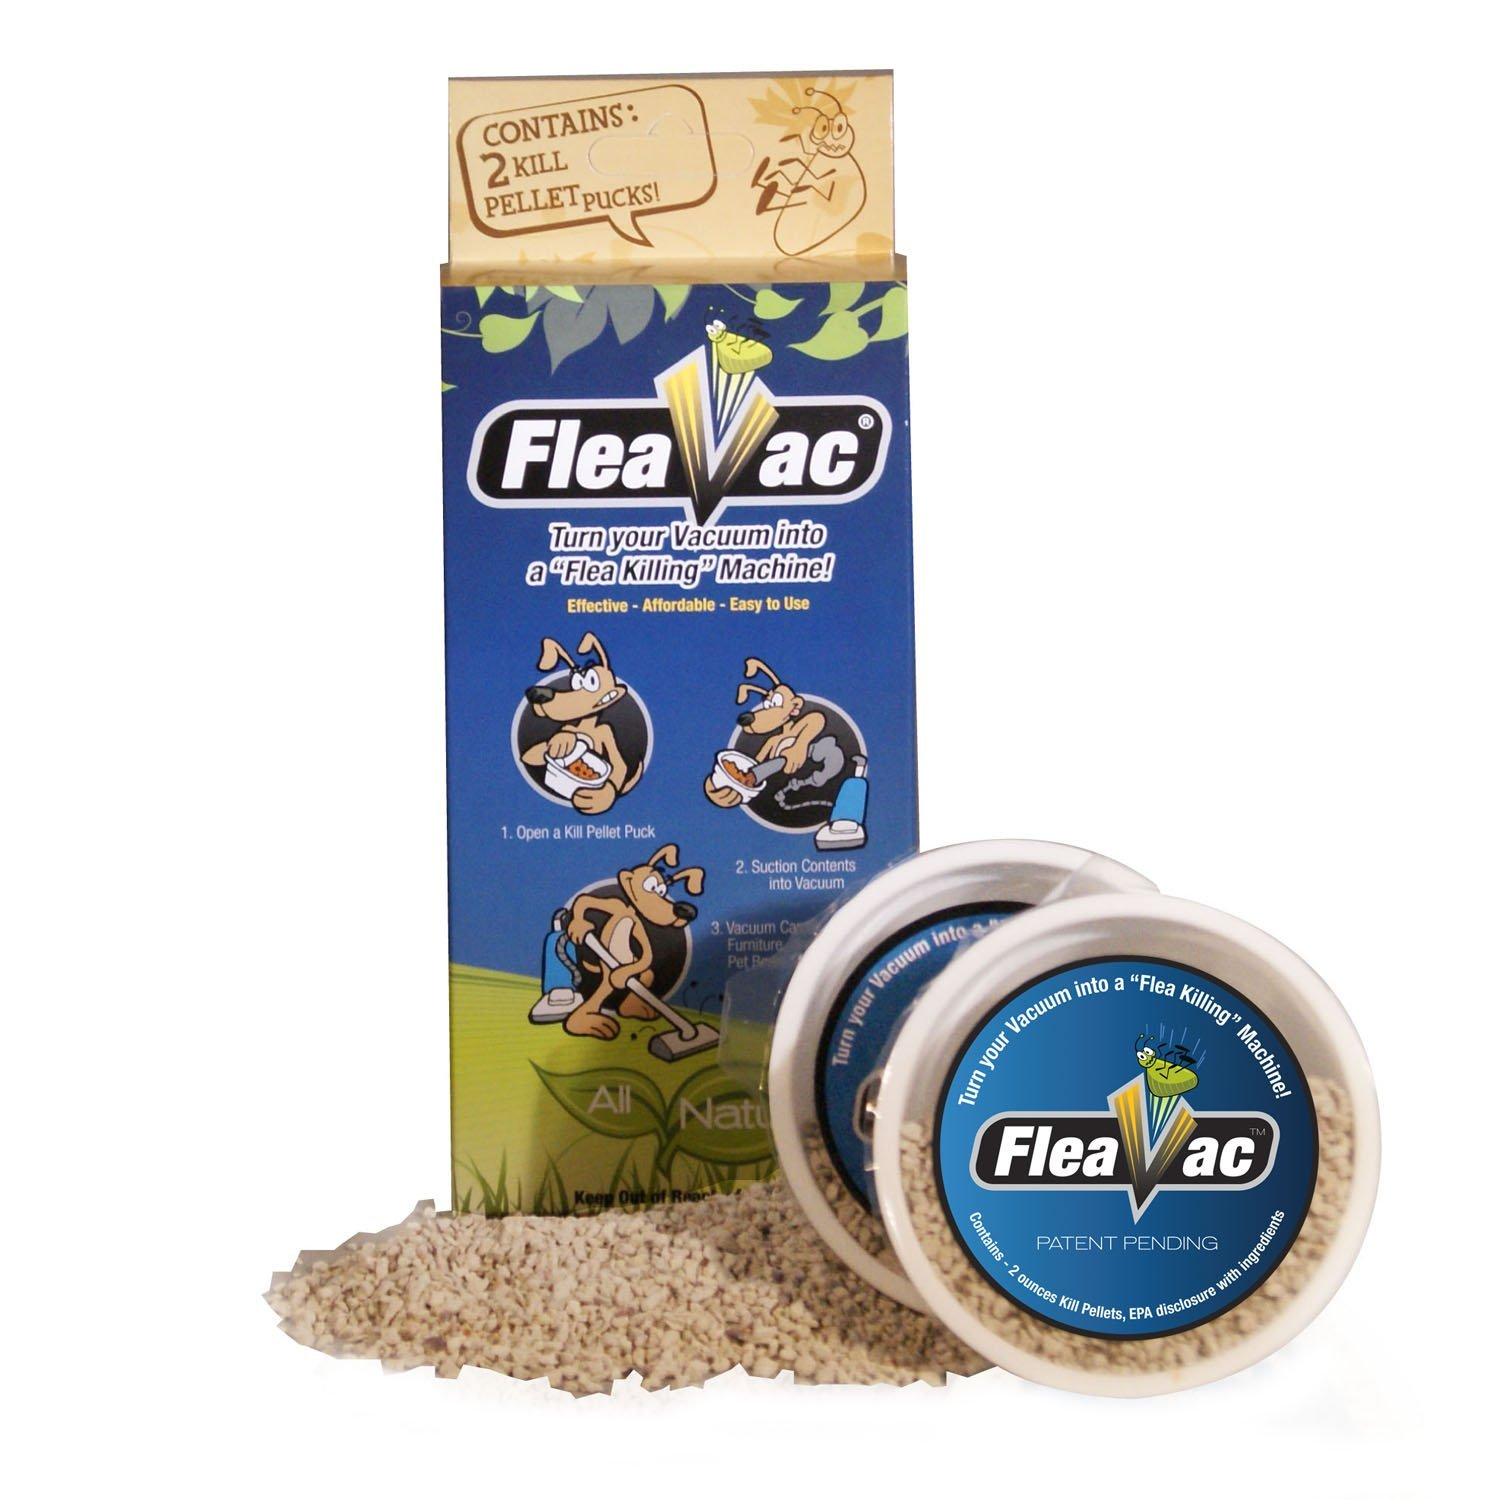 FleaVac Kill Pellets